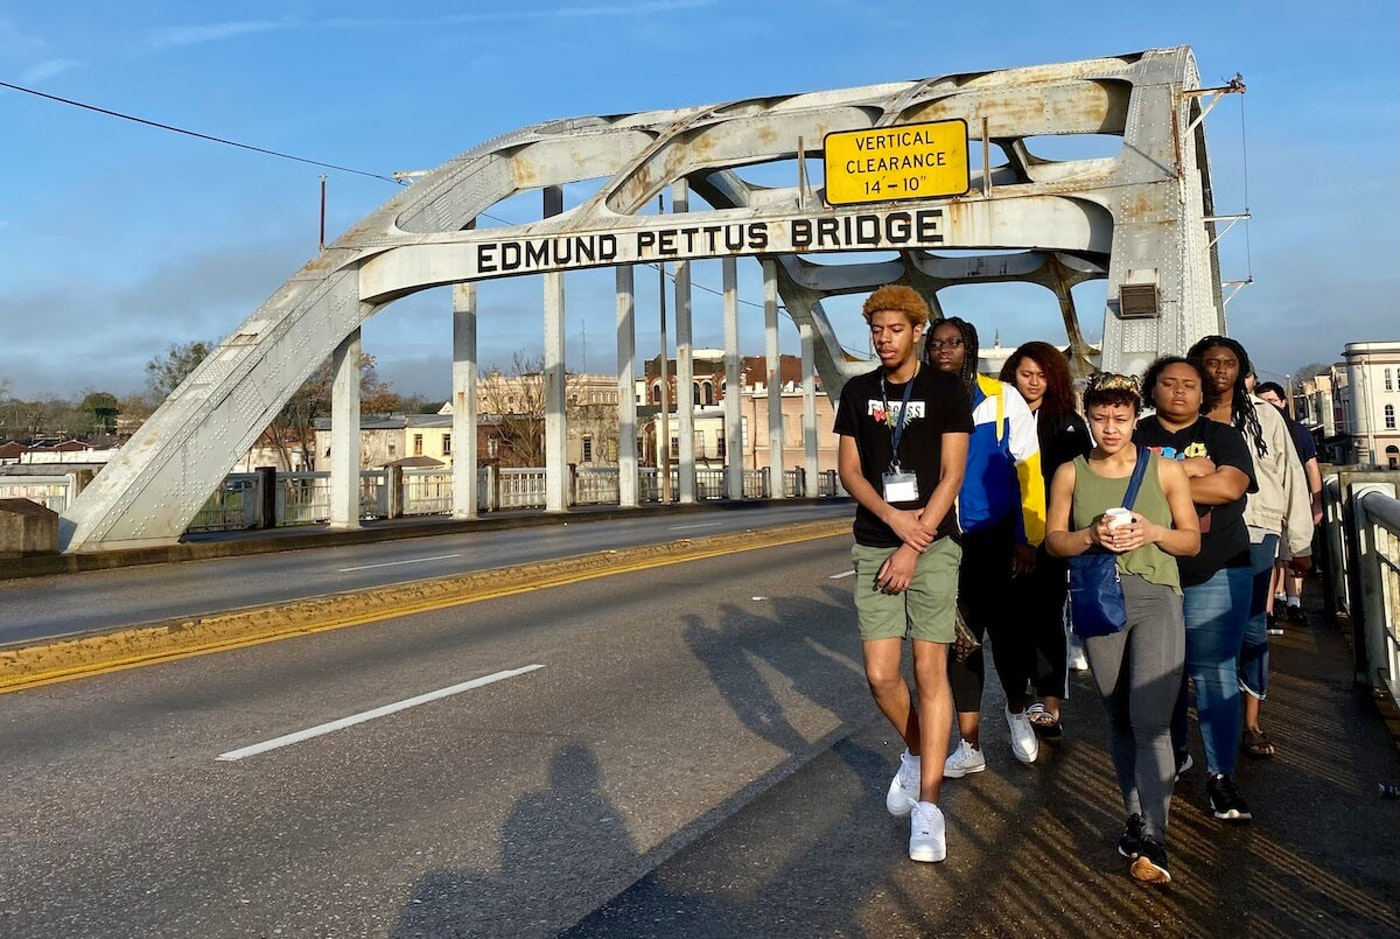 Students taking part in the UW-Eau Claire Civil Rights Pilgrimage cross the Edmund Pettus Bridge in Selma, Alabama in January 2020. (Photo courtesy of Jodi Thesing-Ritter)